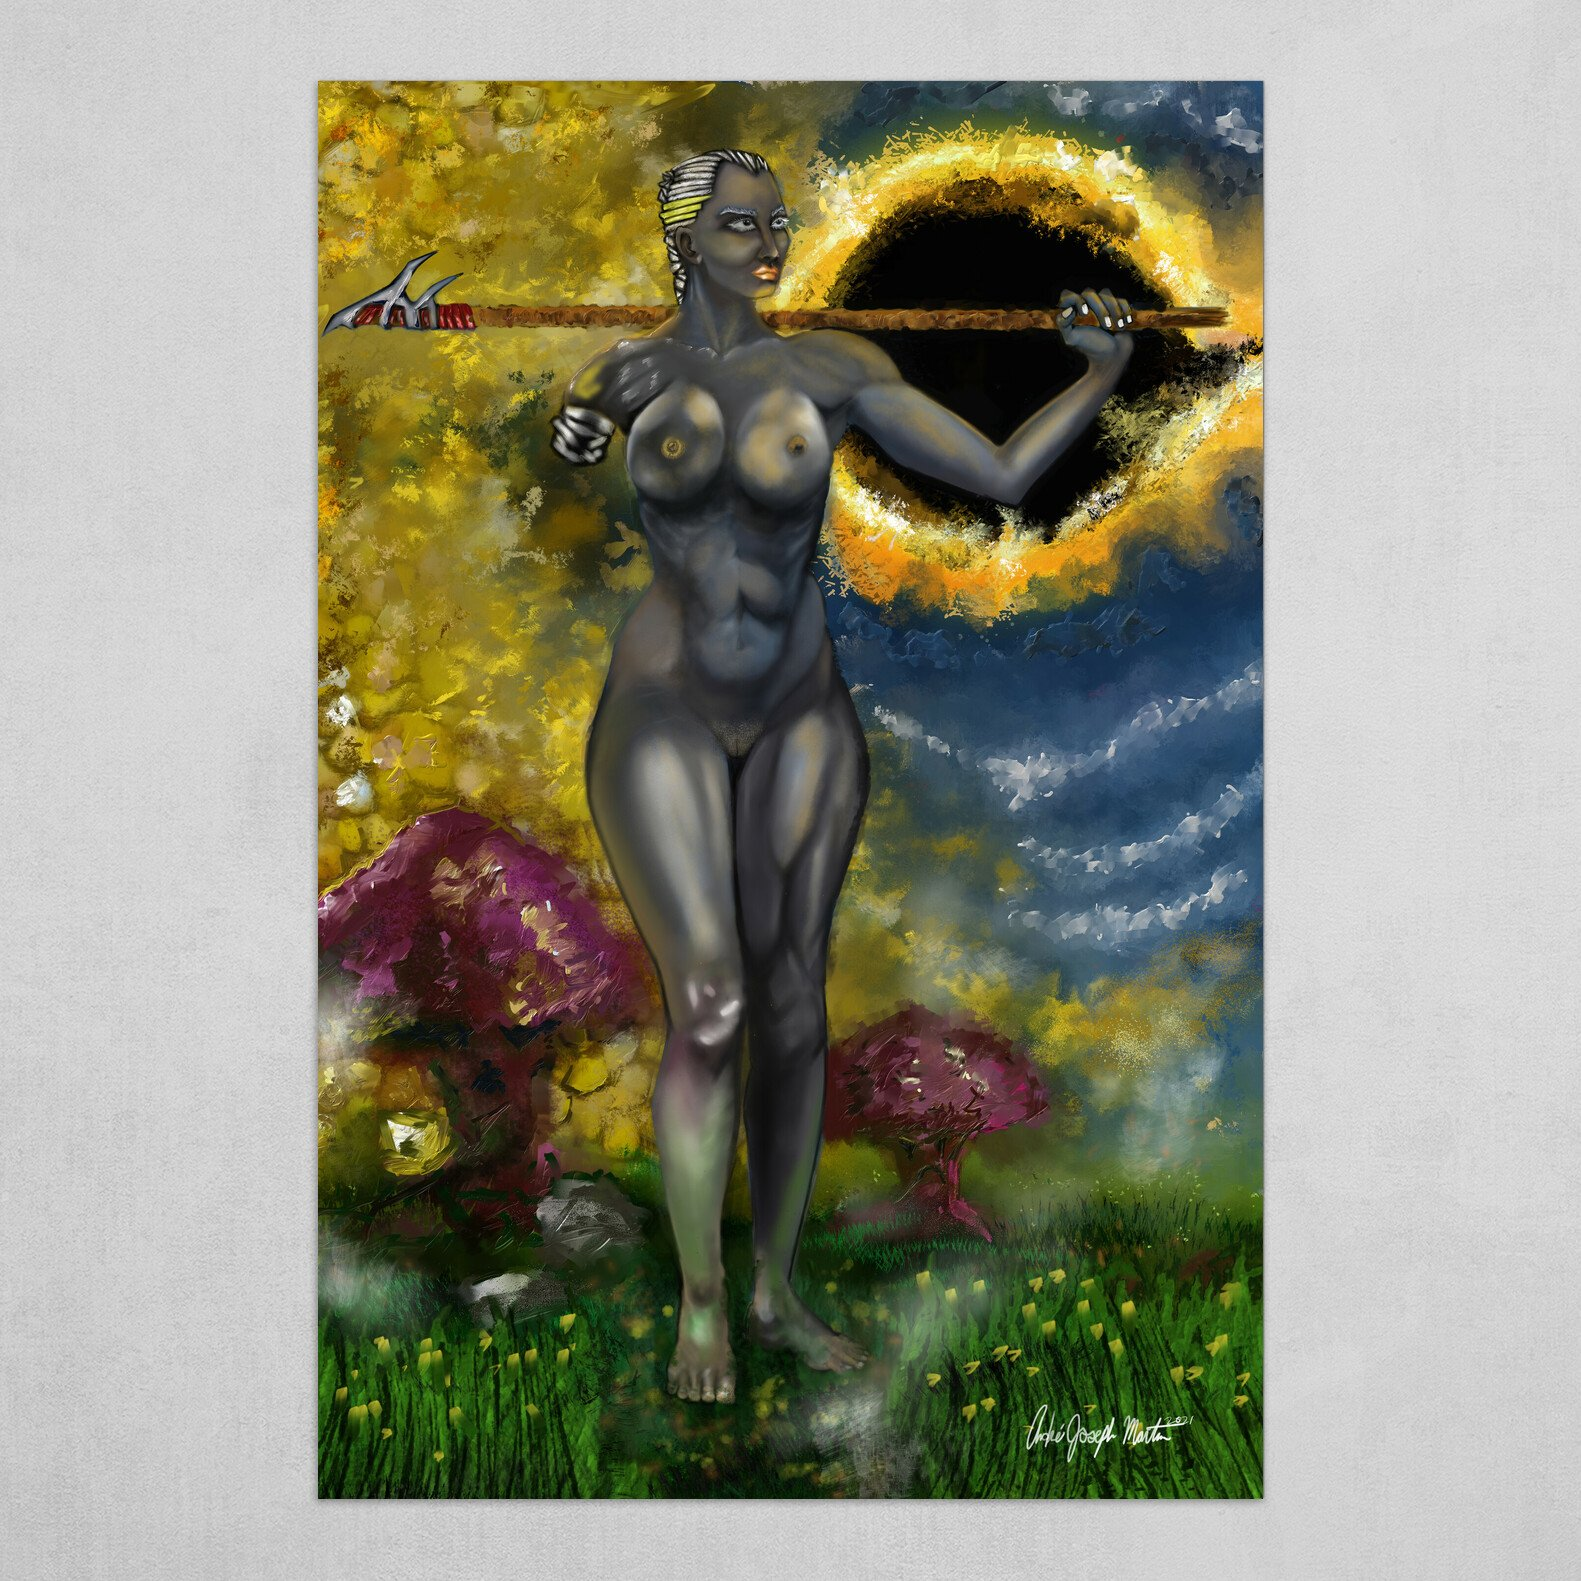 Realm of Black Sun: The Broken Goddess